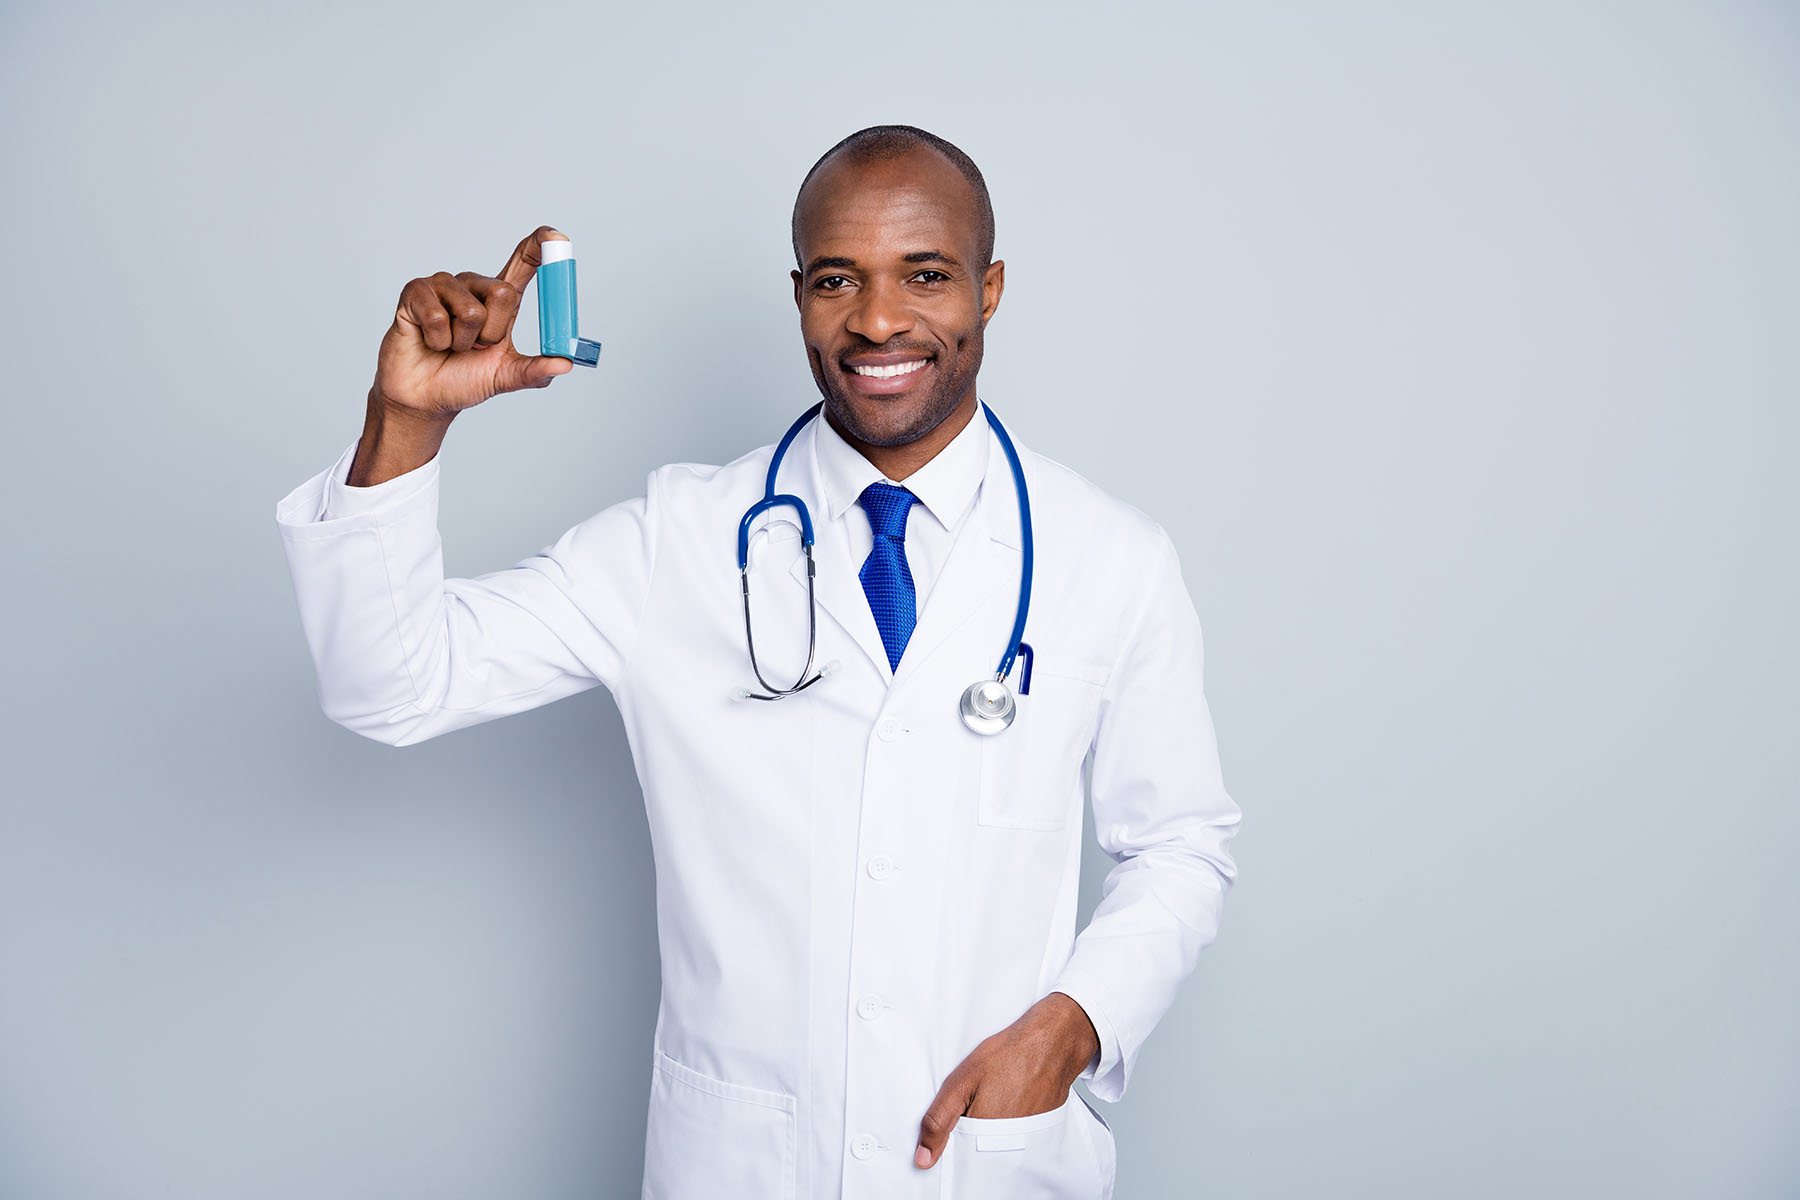 Photo of family doc dark skin guy hold inhaler asthma attack advising, medical prescription against self-treatment concept wear stethoscope lab coat isolated grey color background